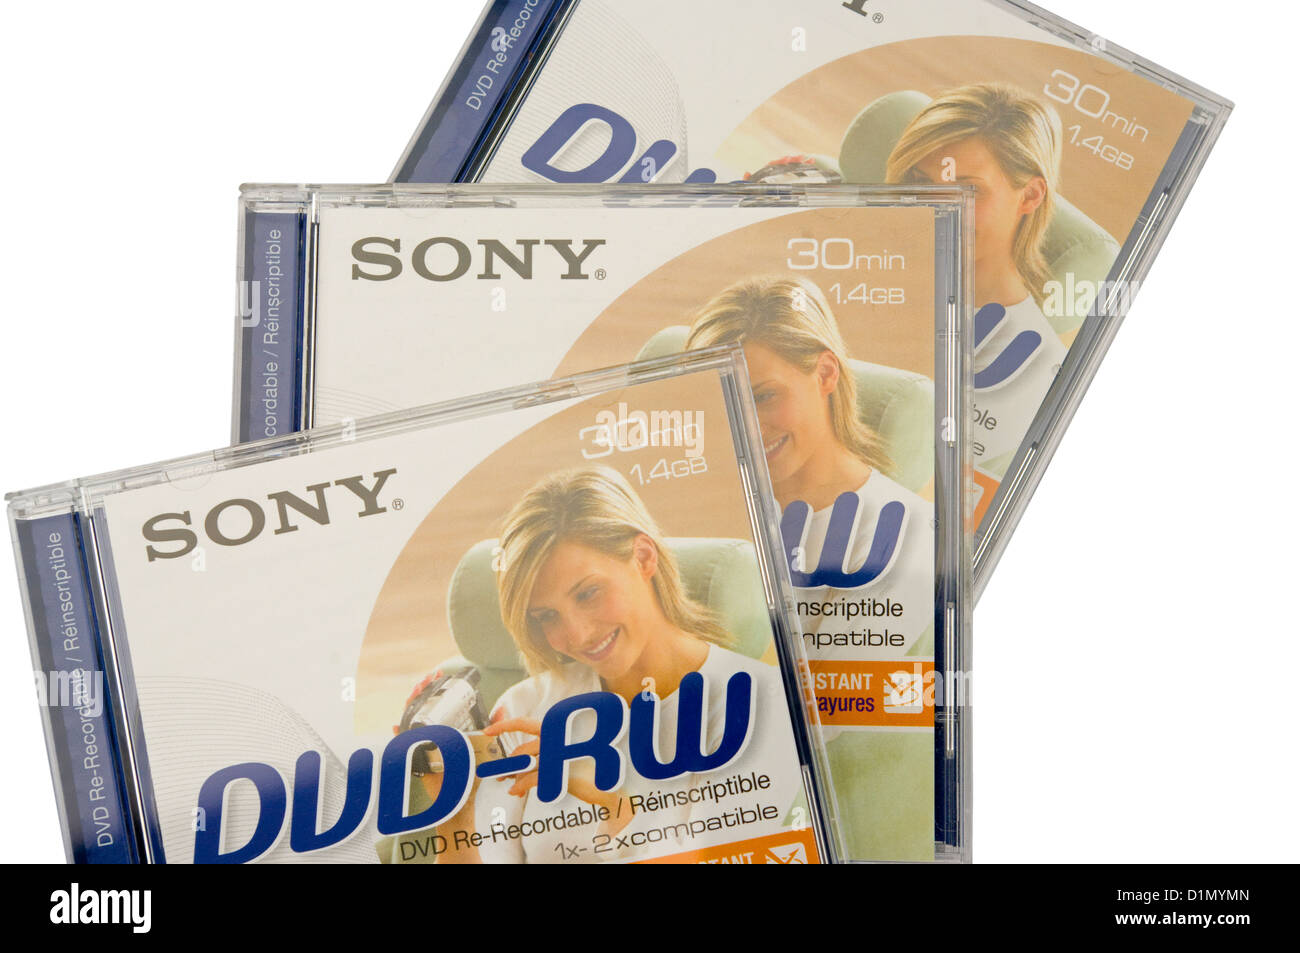 3 Sony Re-Recordable DVD-RW Plastic Cases - Stock Image